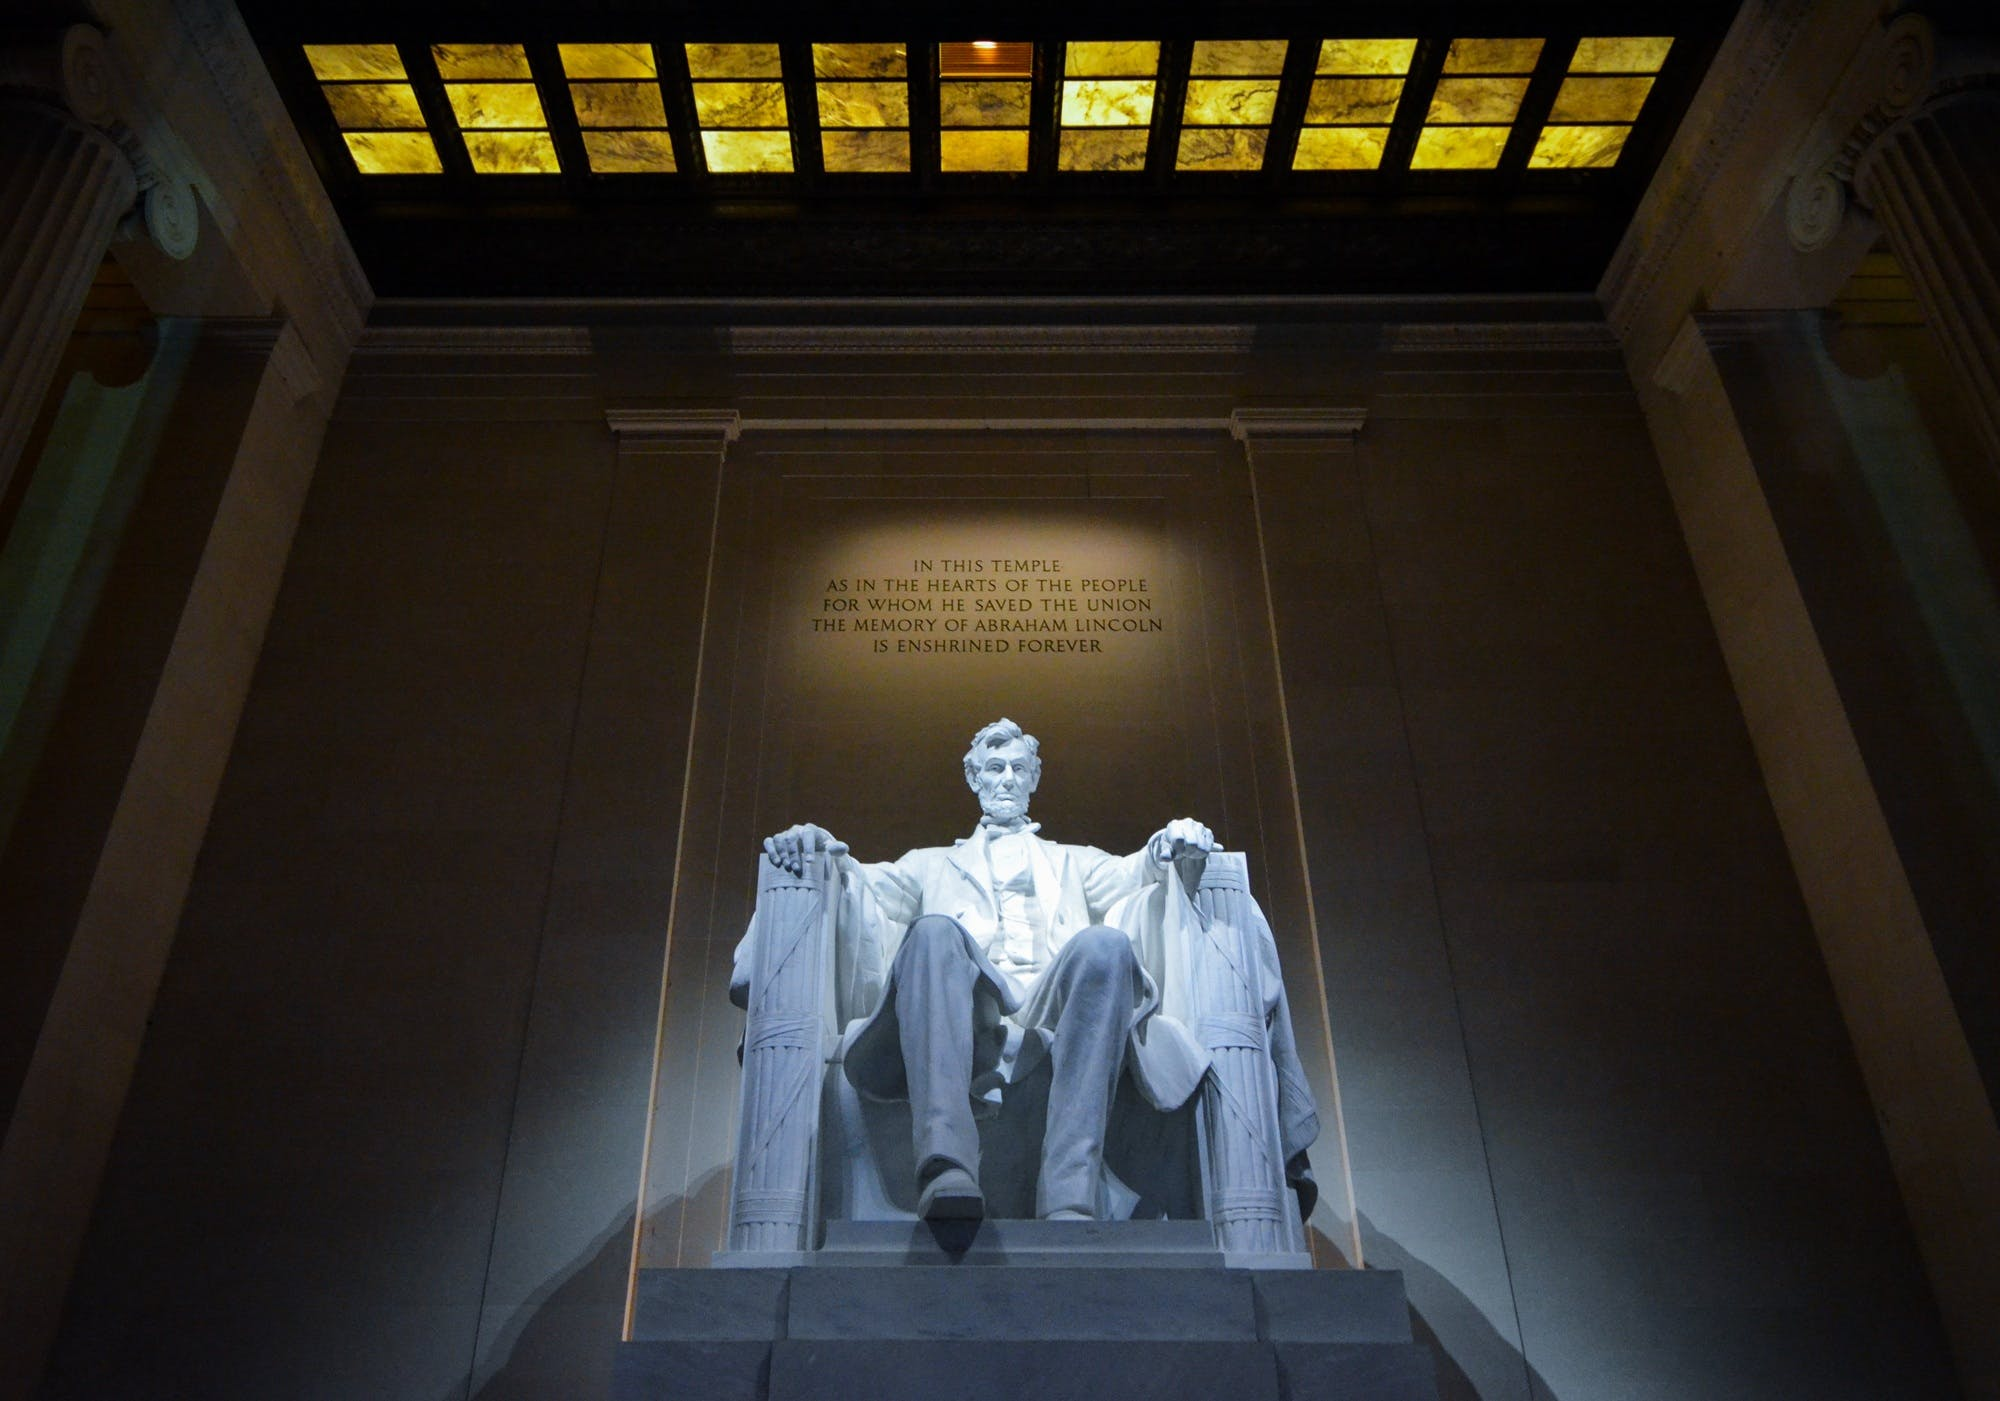 Abraham Lincoln Sitting on Chair Statue